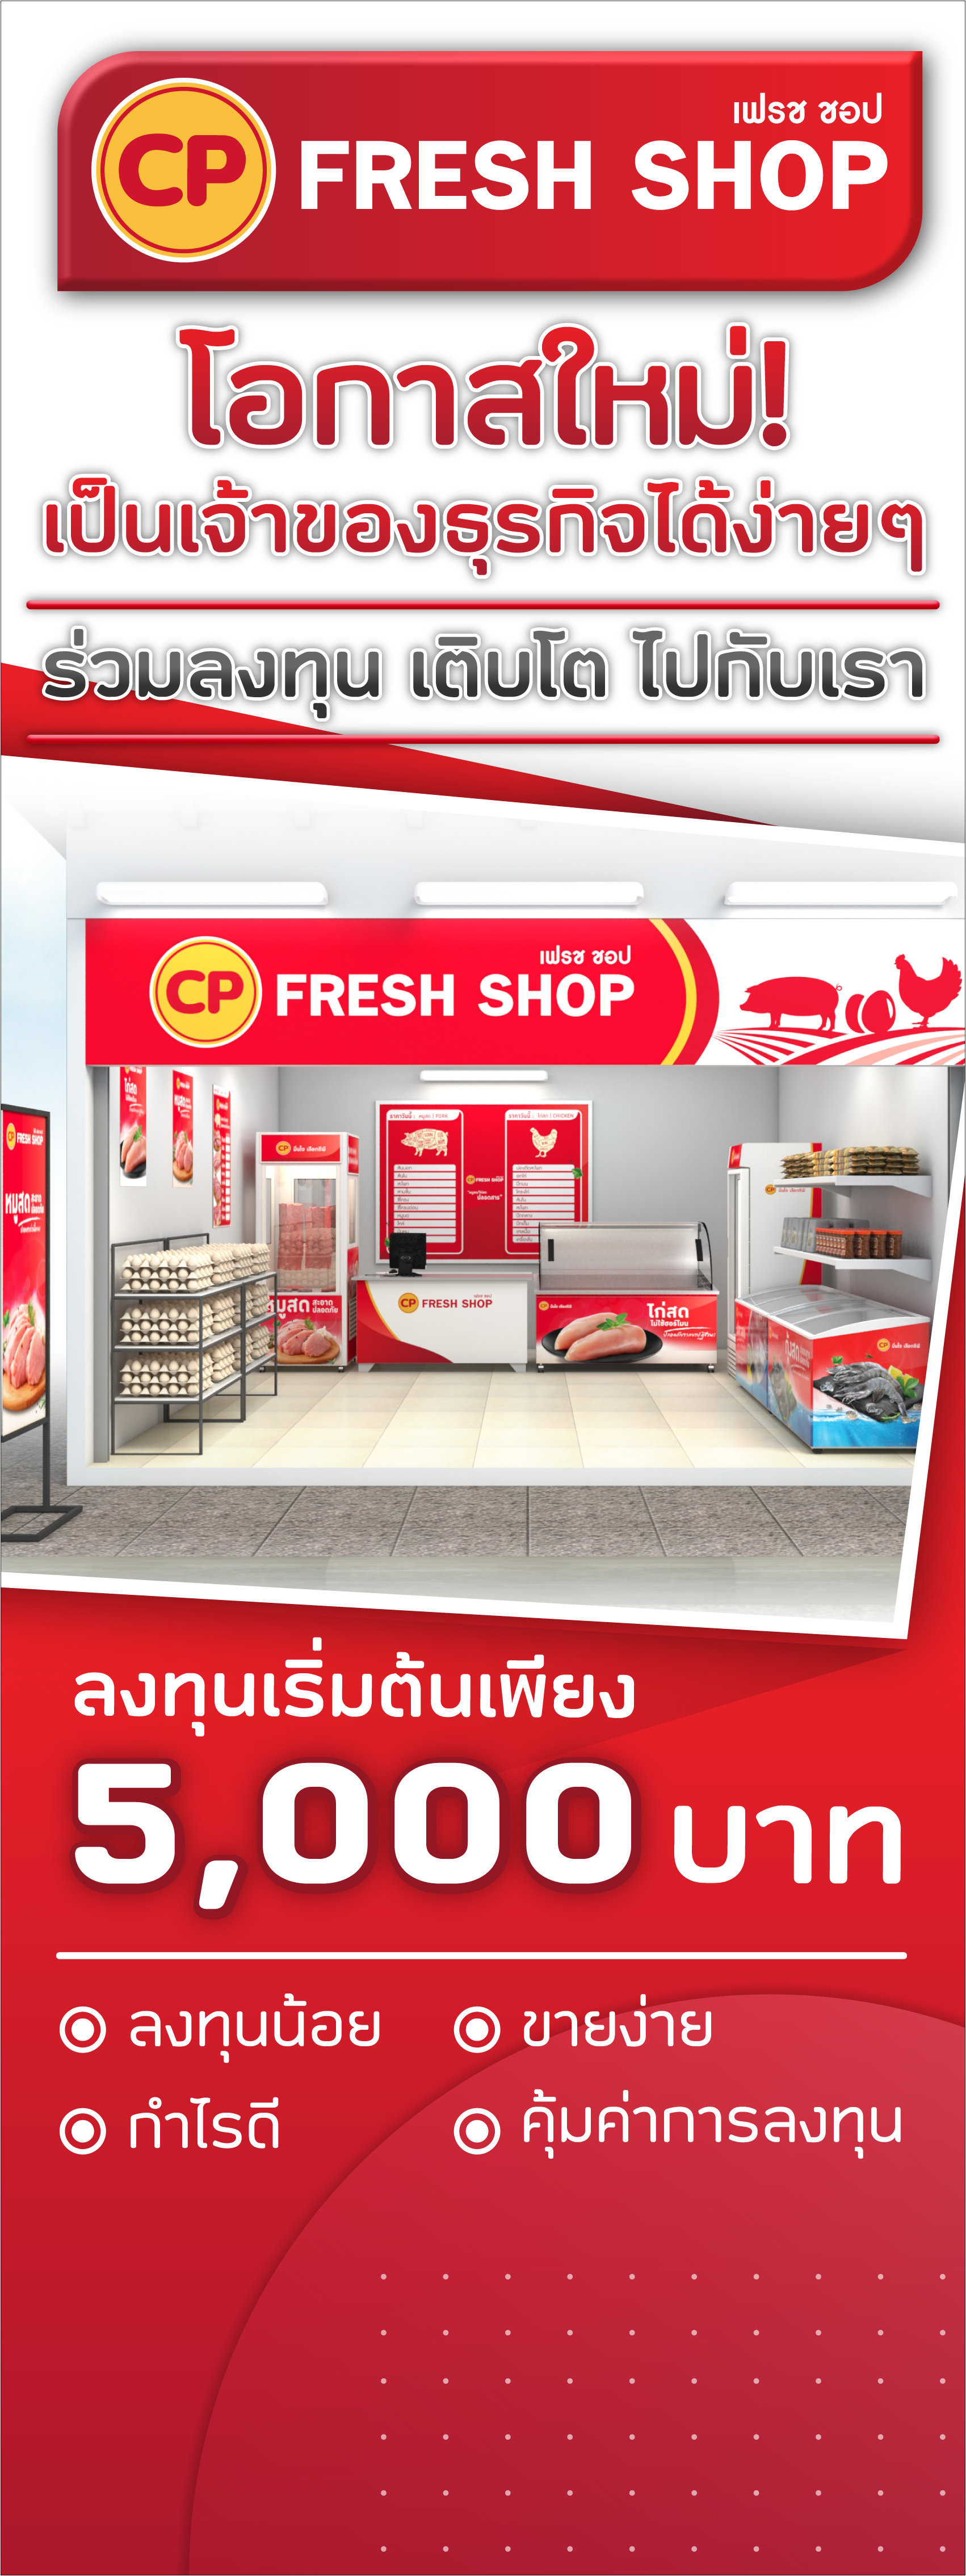 AW_Roll Up-Fresh Shop-01